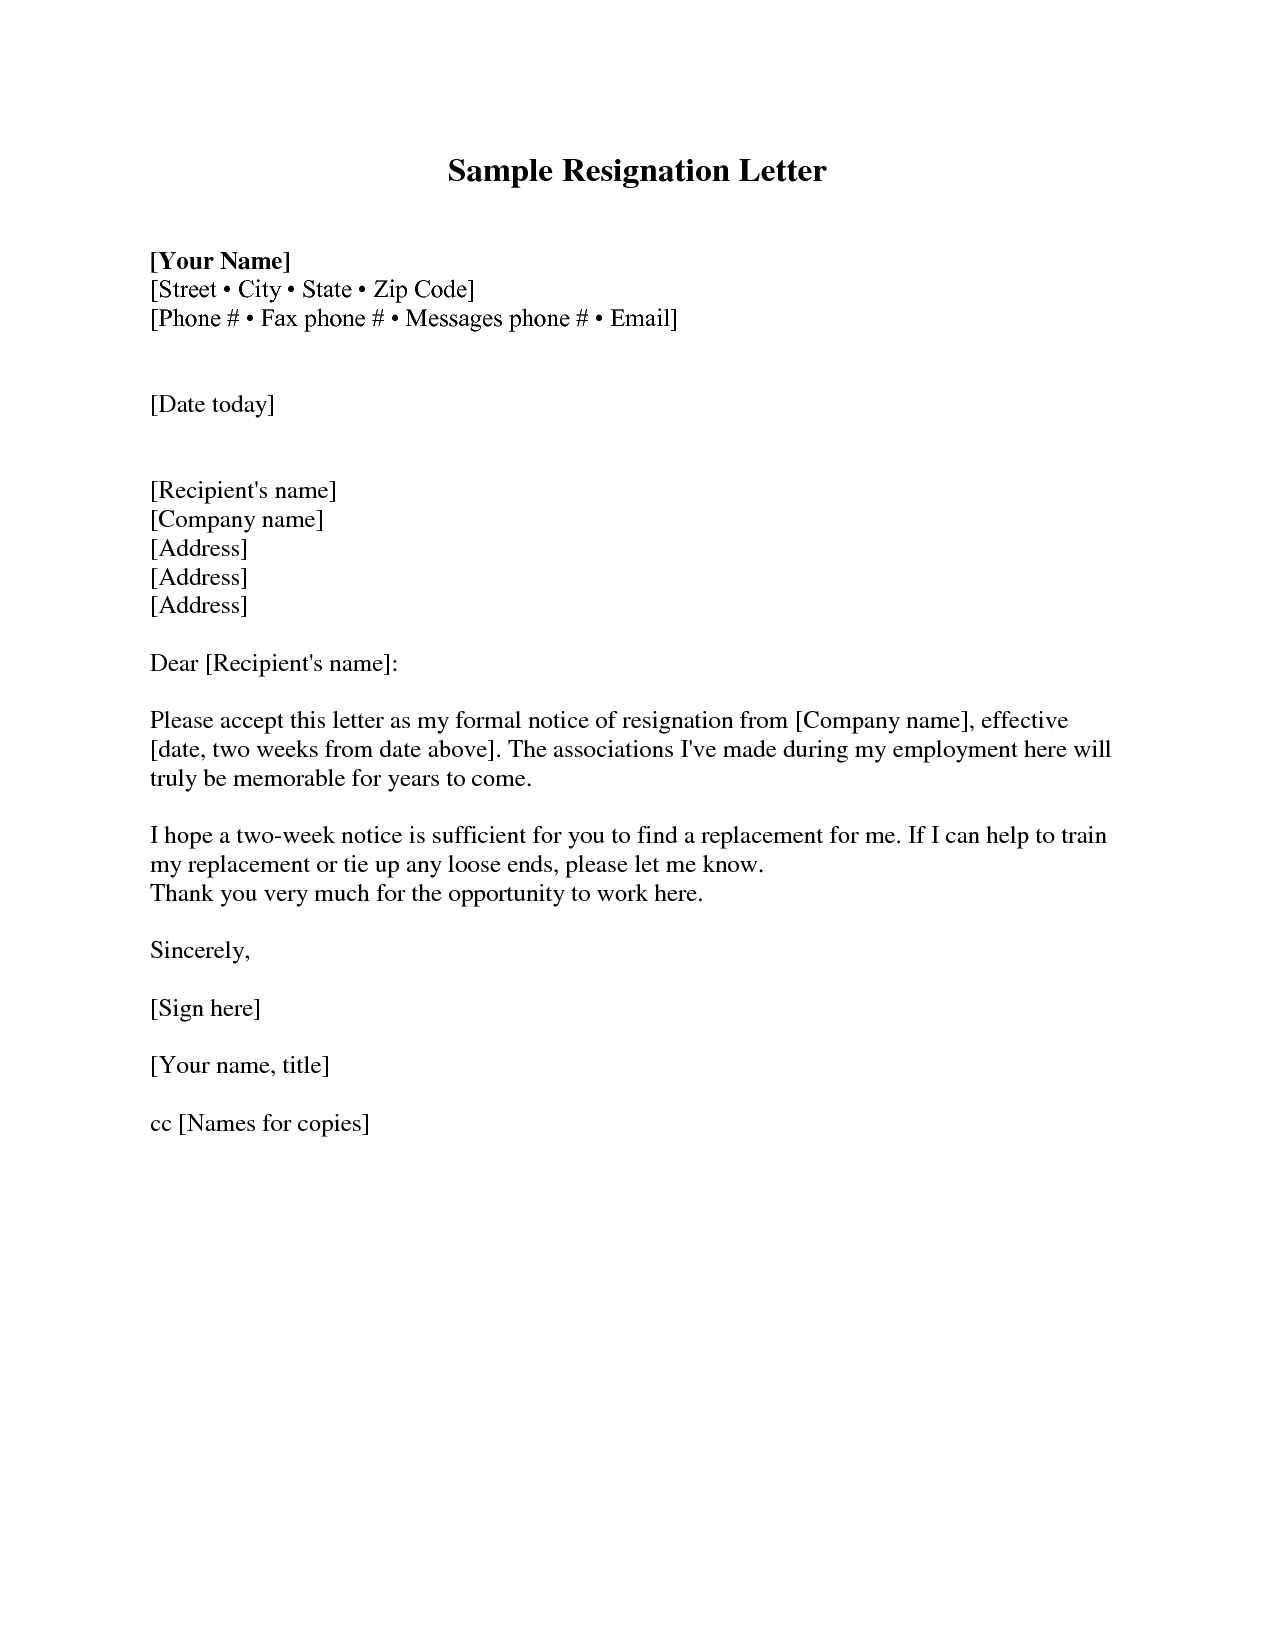 letter of resignation template microsoft are you looking for a letter of resignation template 2 weeks notice letter of resignation 2 weeks notice template